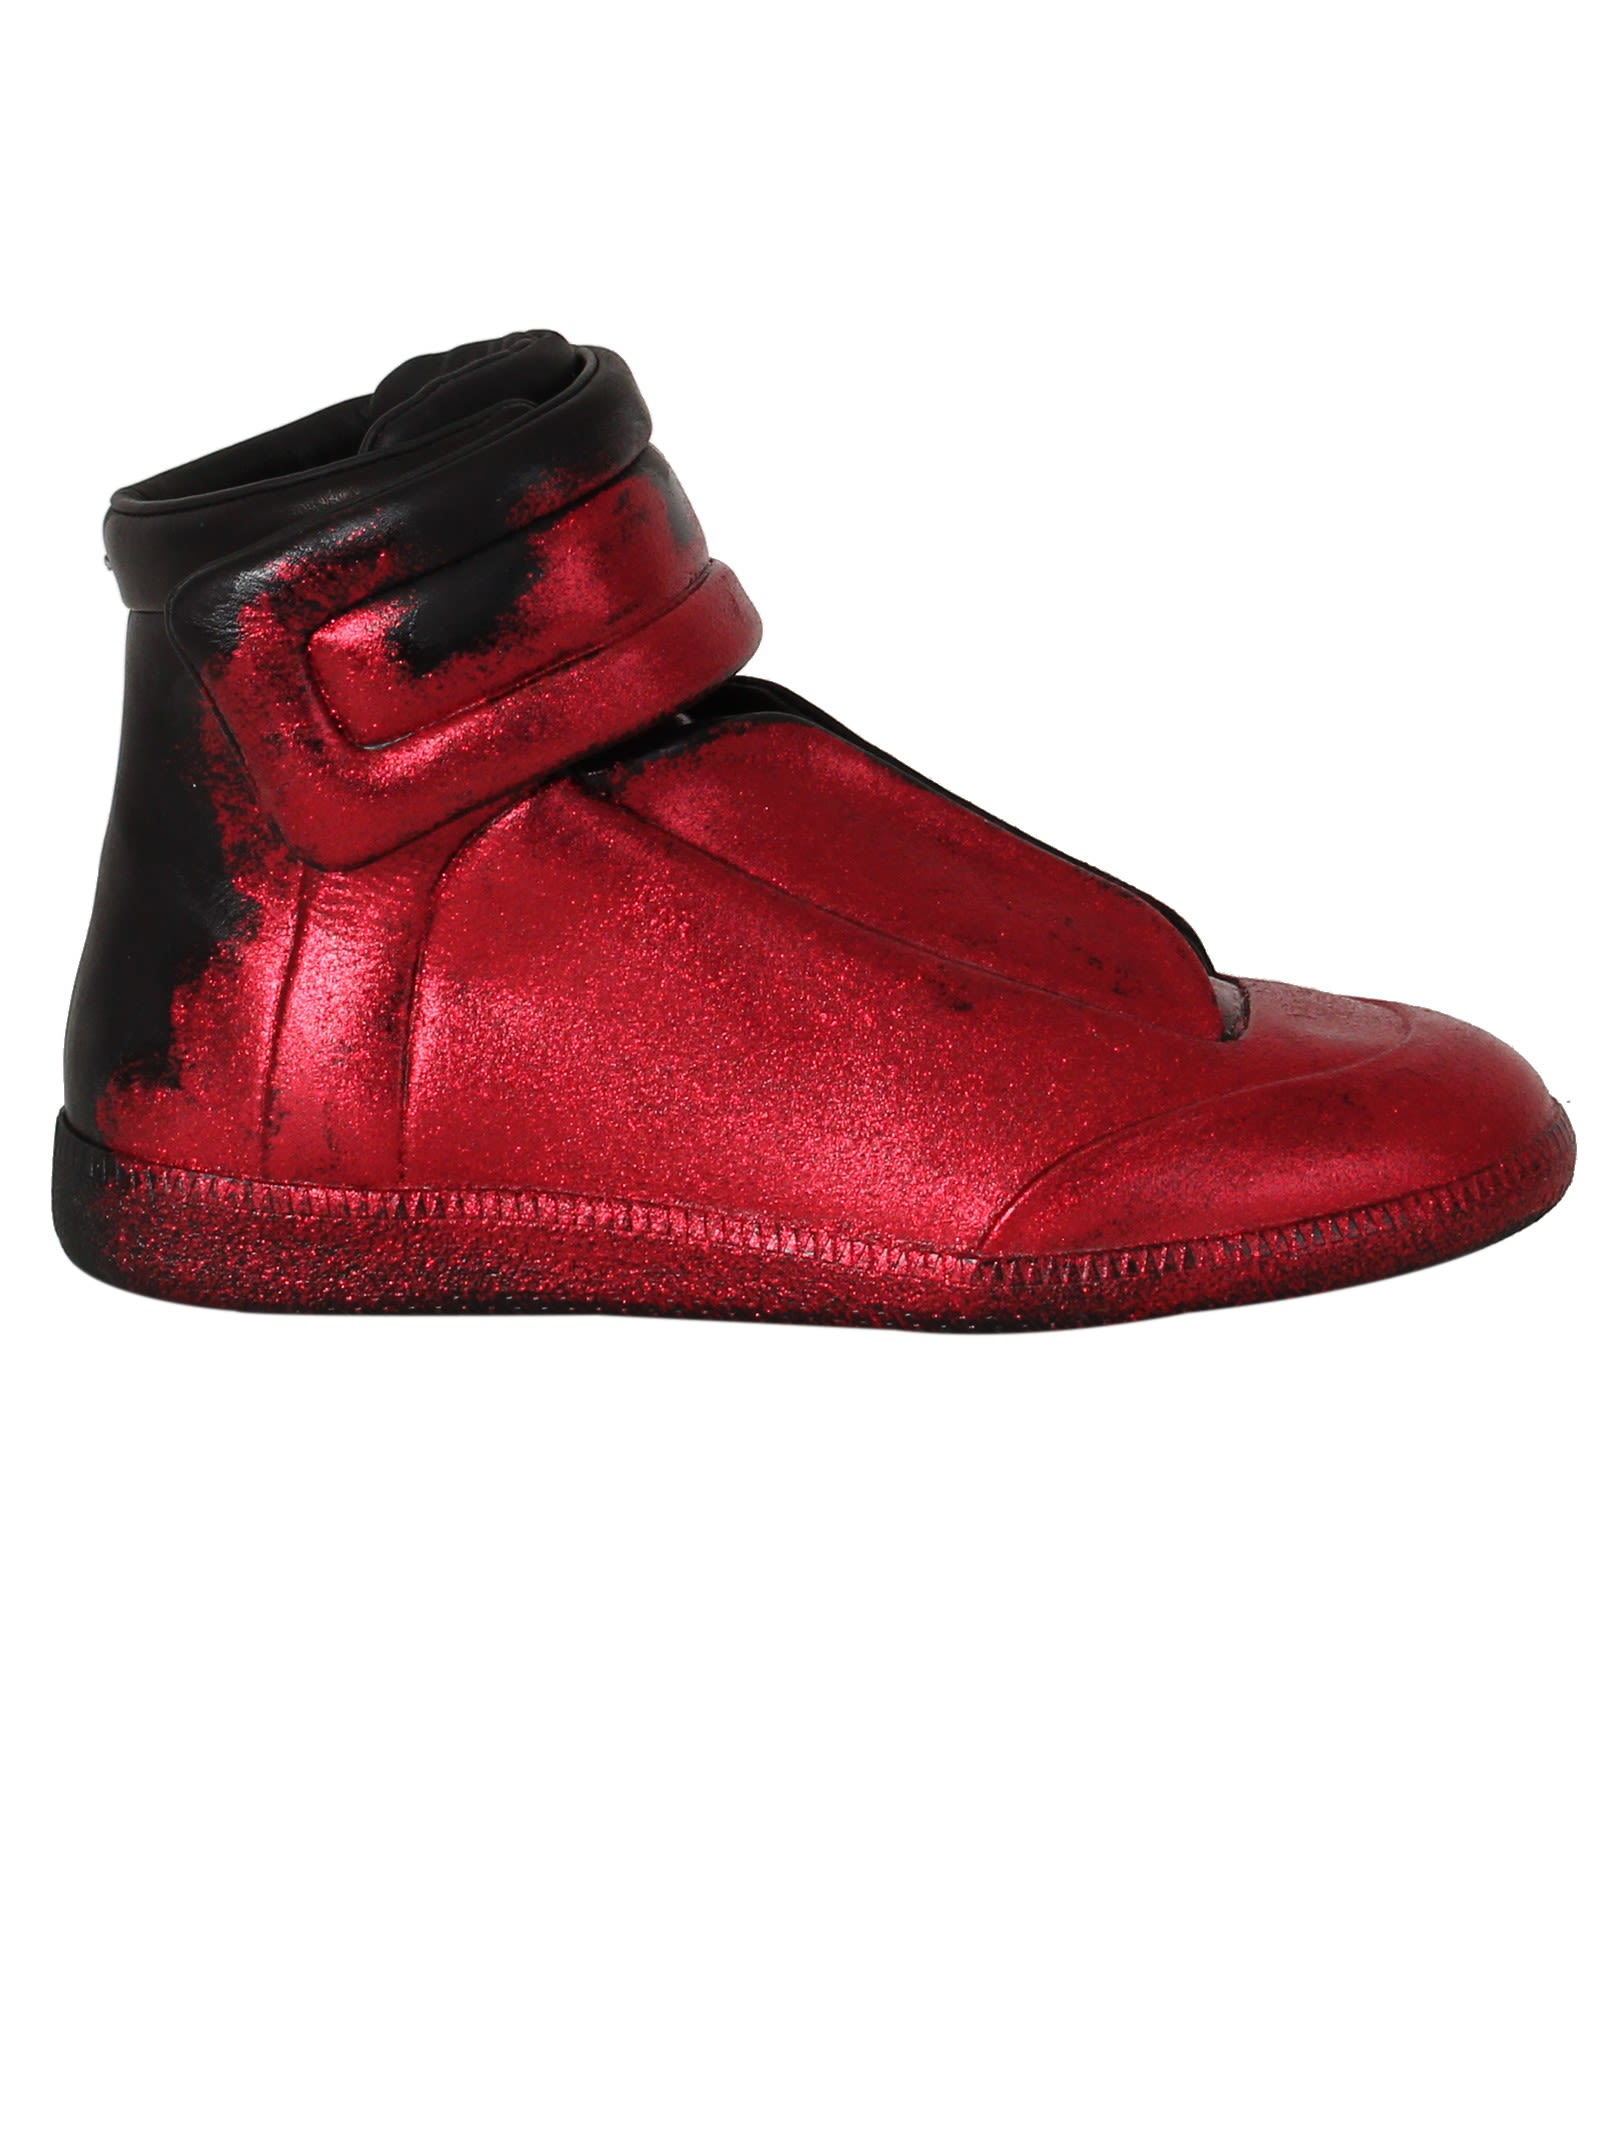 Maison margiela maison margiela red glitter future for Maison de margiela